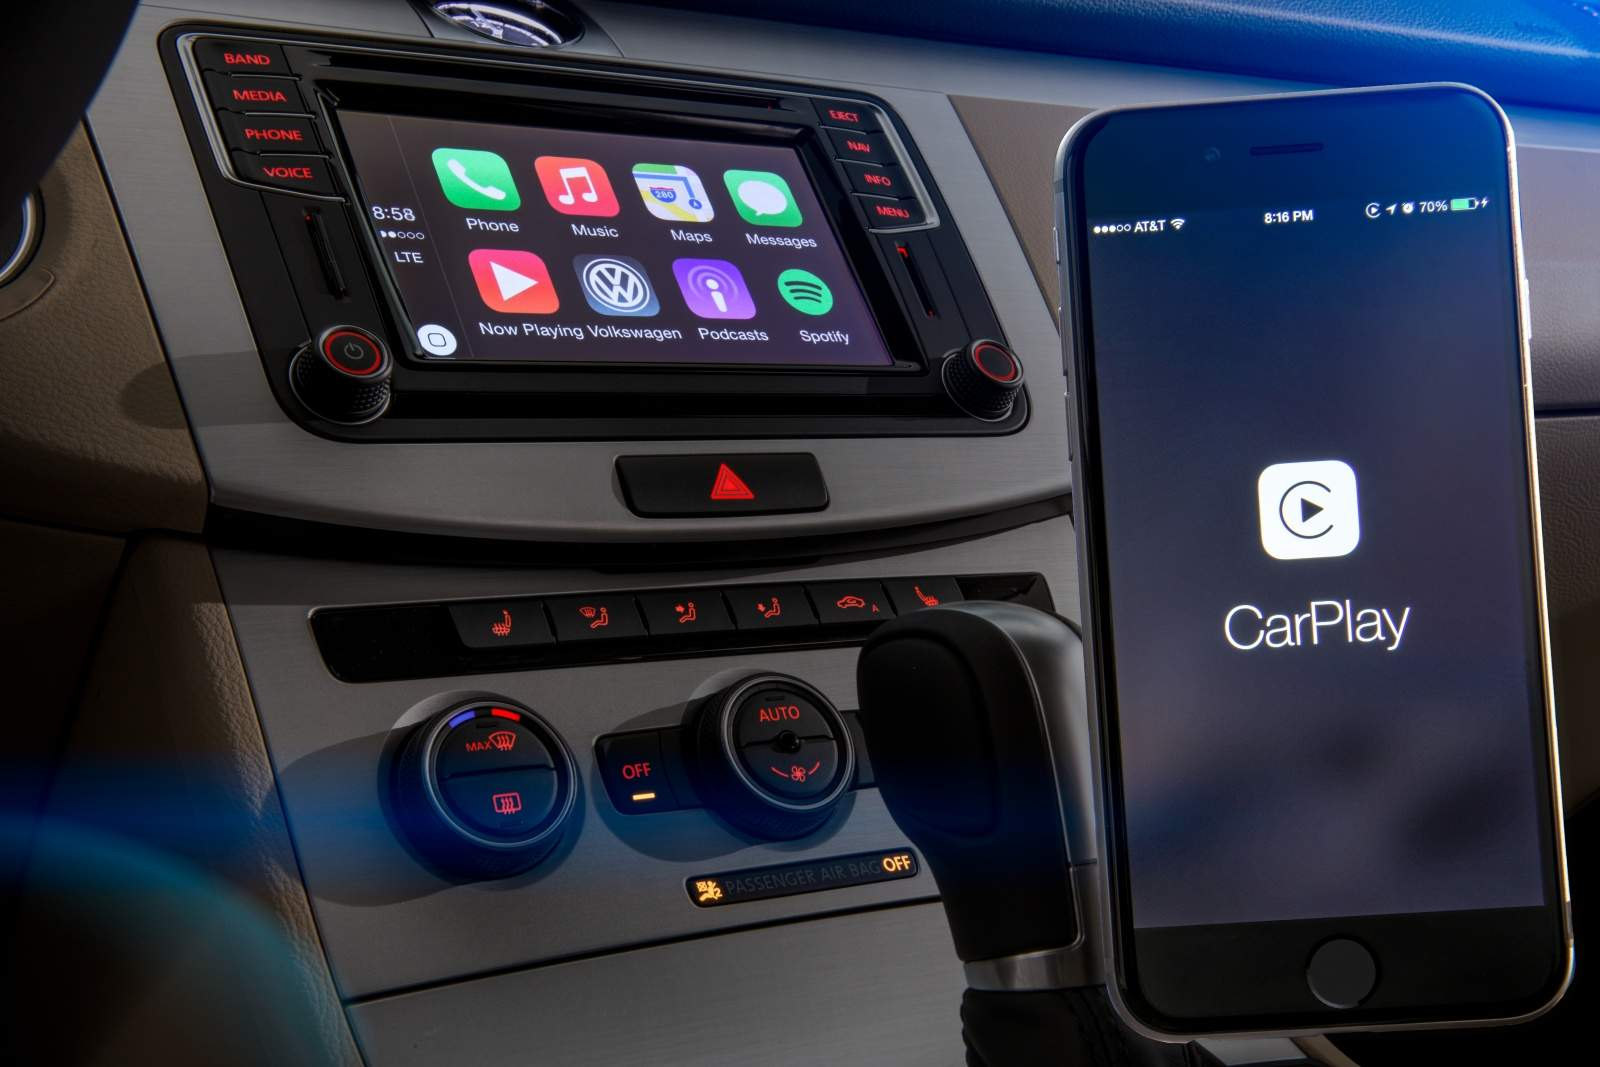 VW's 2016 lineup is rolling deep with CarPlay.